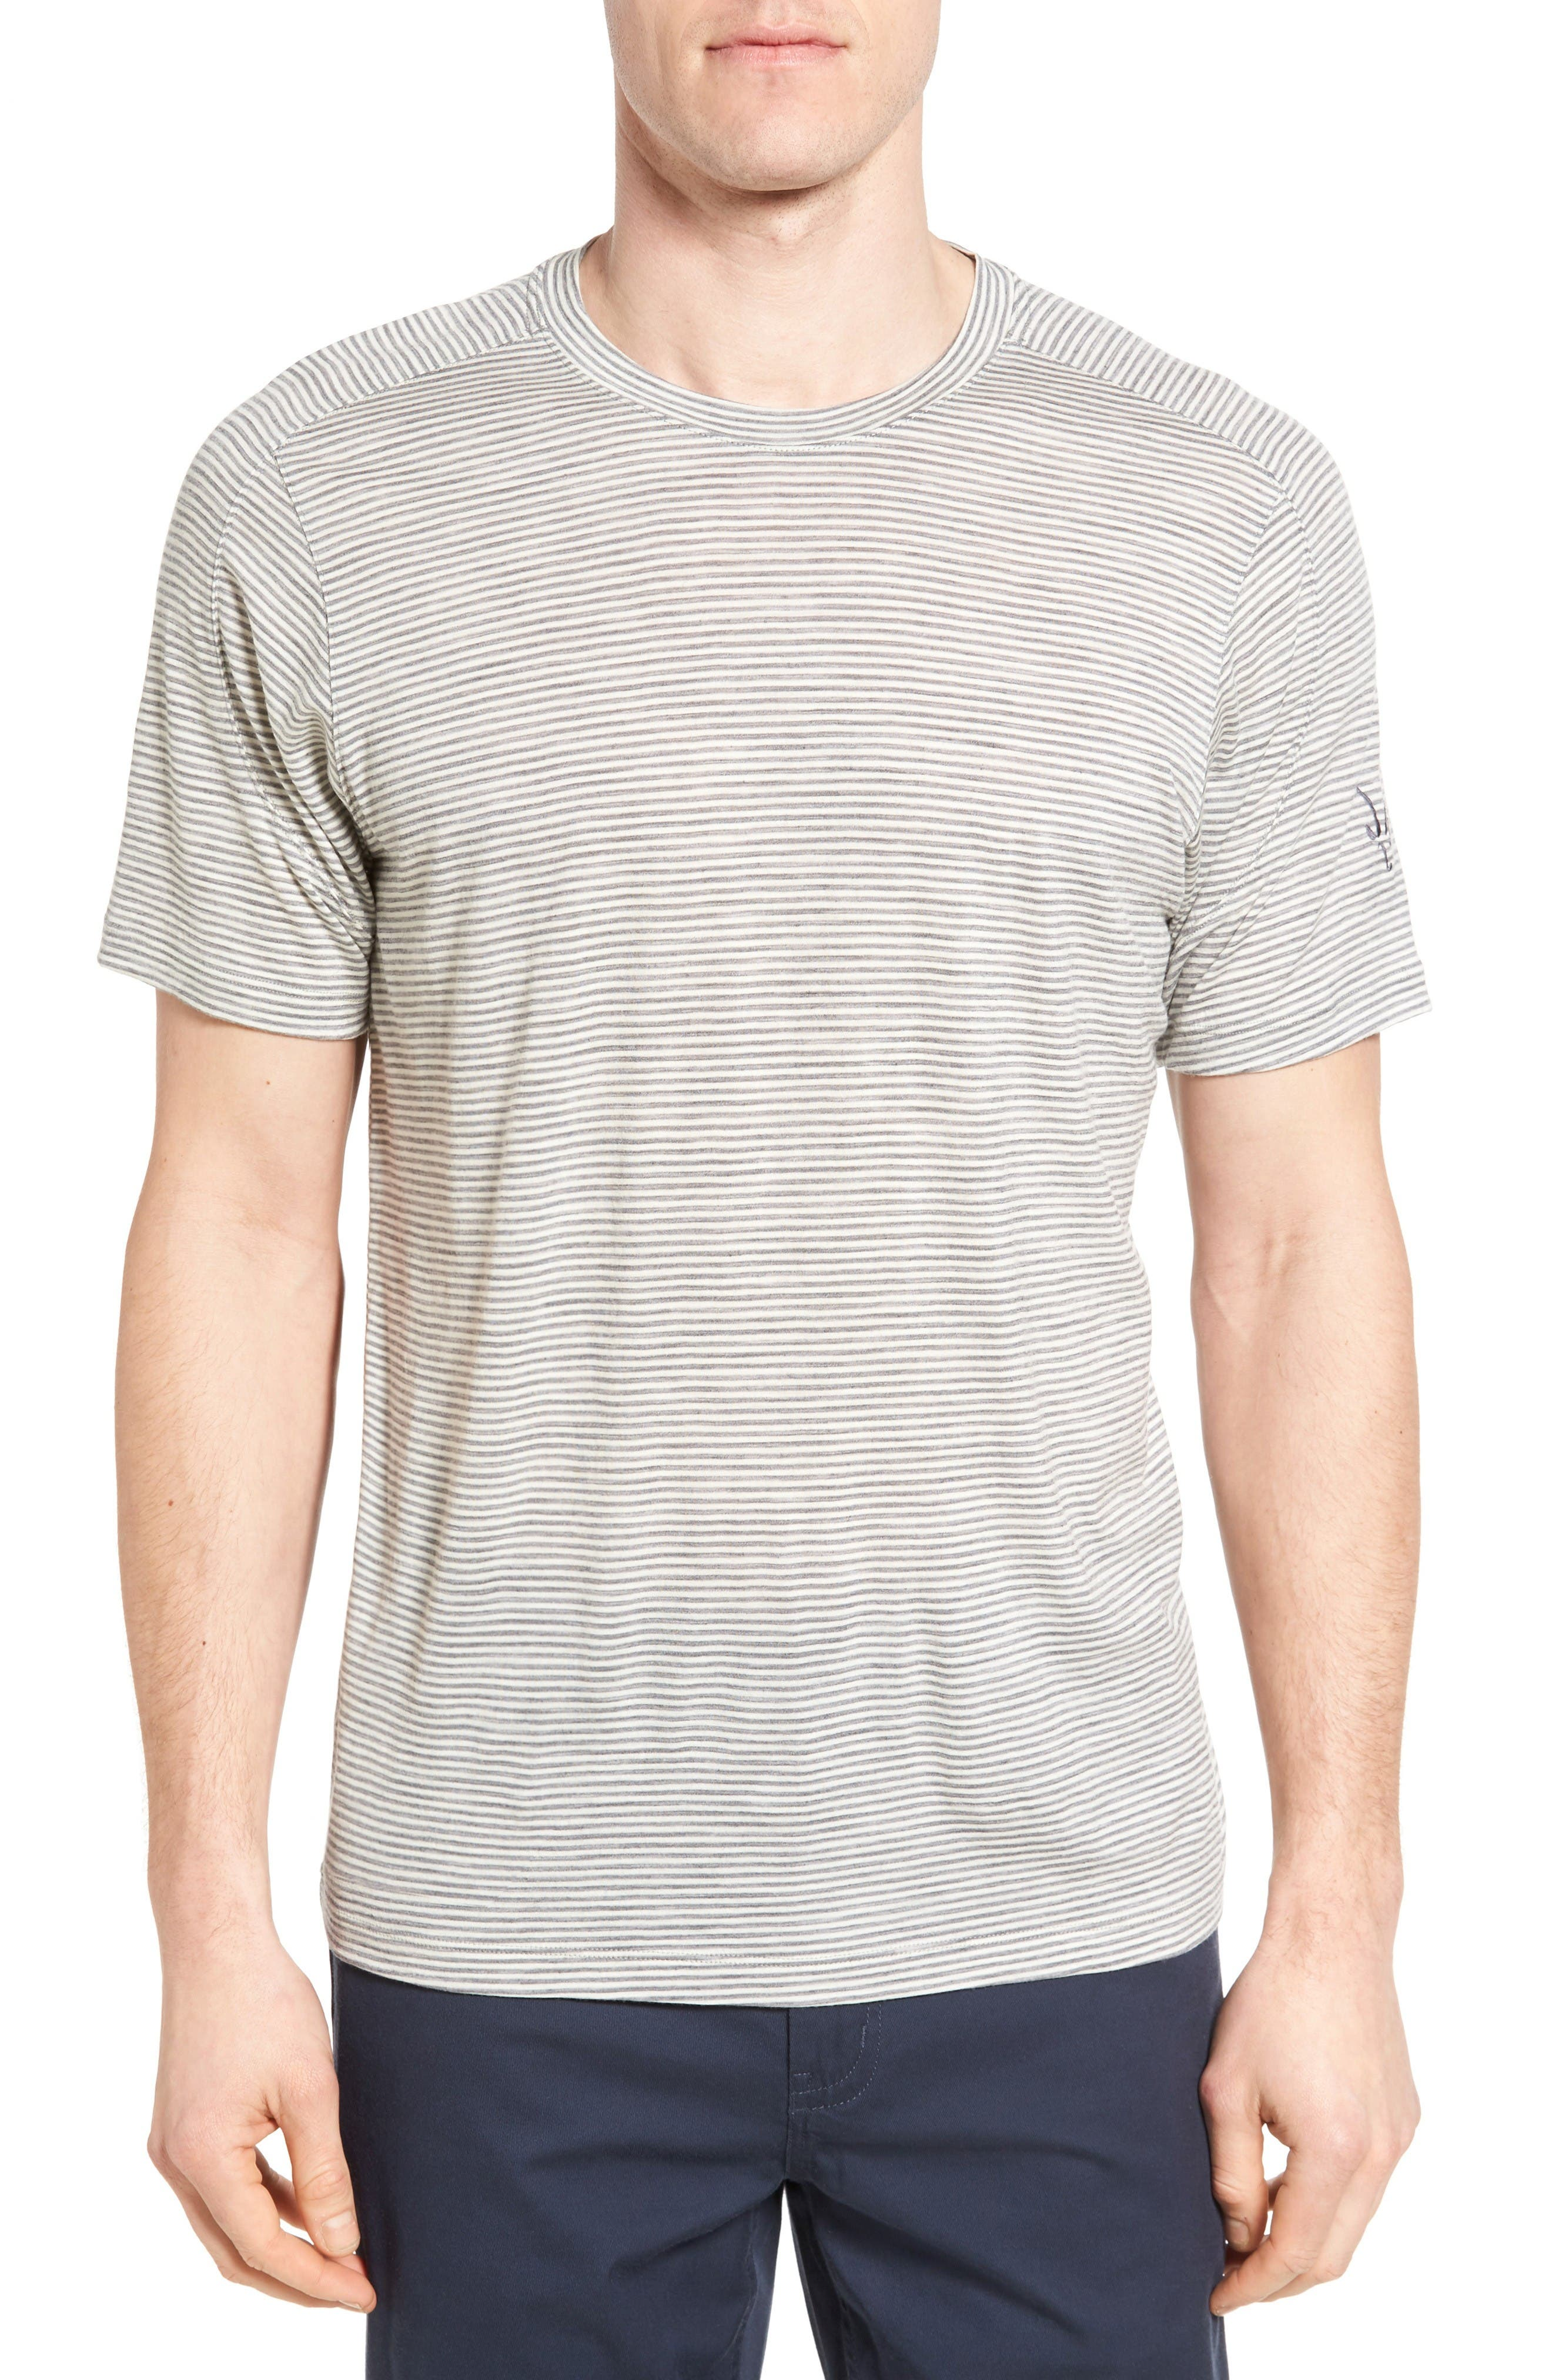 ibex Regular Fit Overdyed Merino Wool T-Shirt